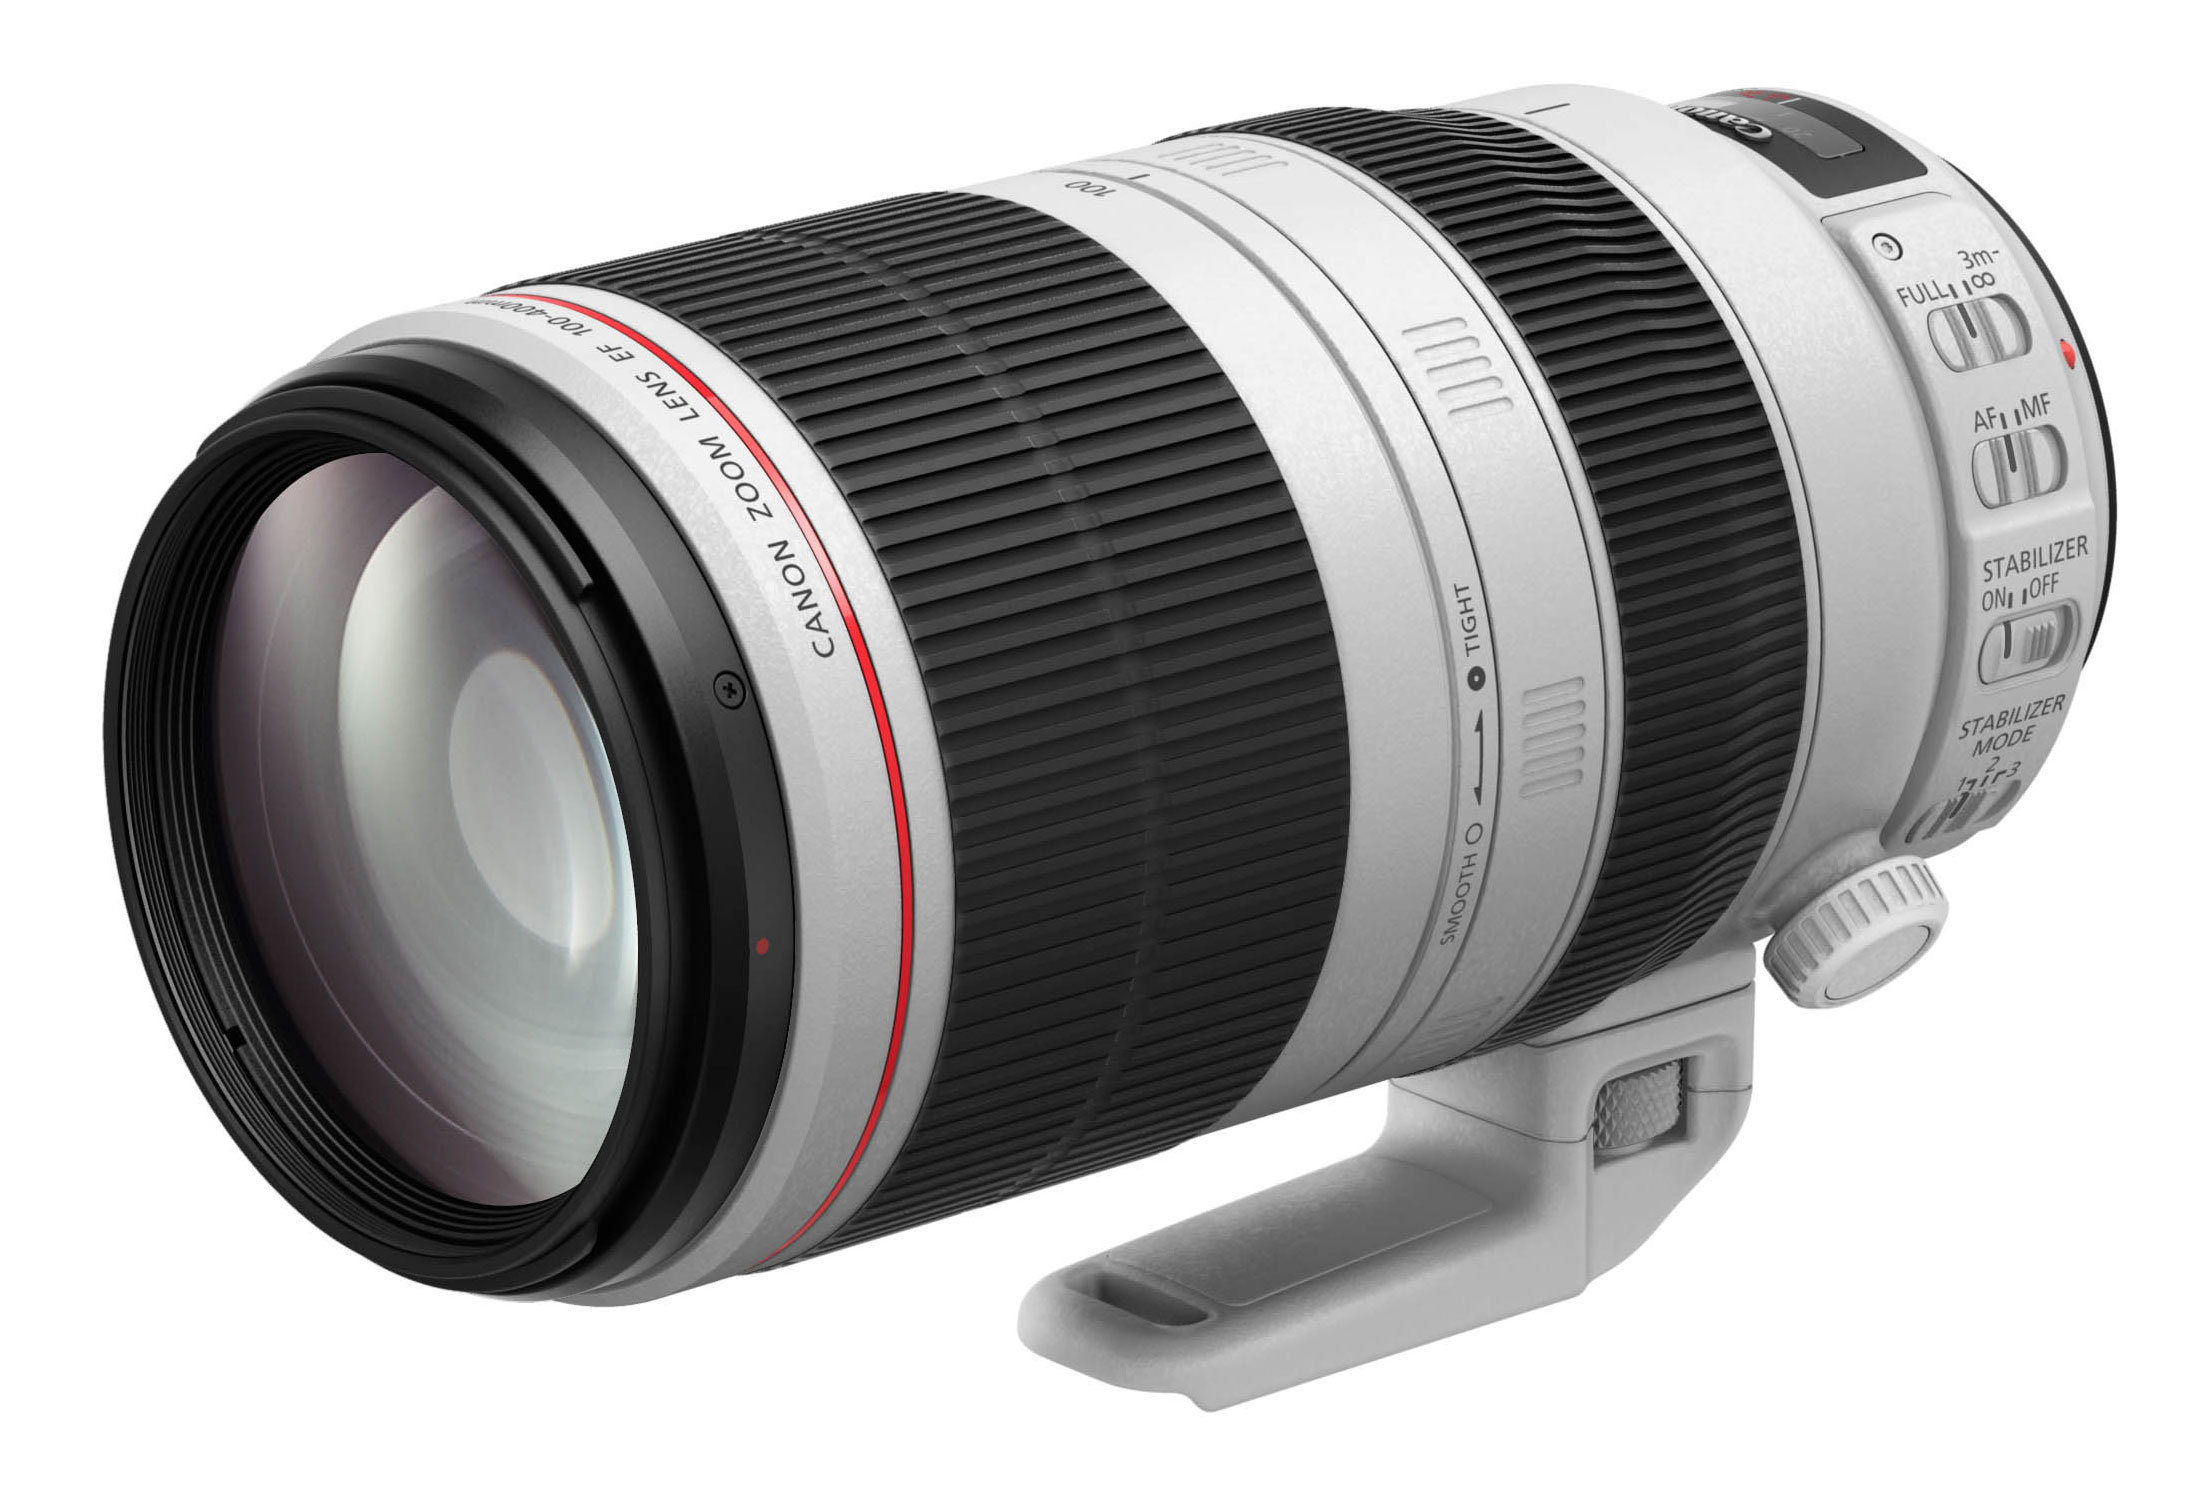 Best Canon Telephoto Lenses Cameralabs Lensa 55 250mm Is Stm Ef 100 400mm F45 56l Ii Usm